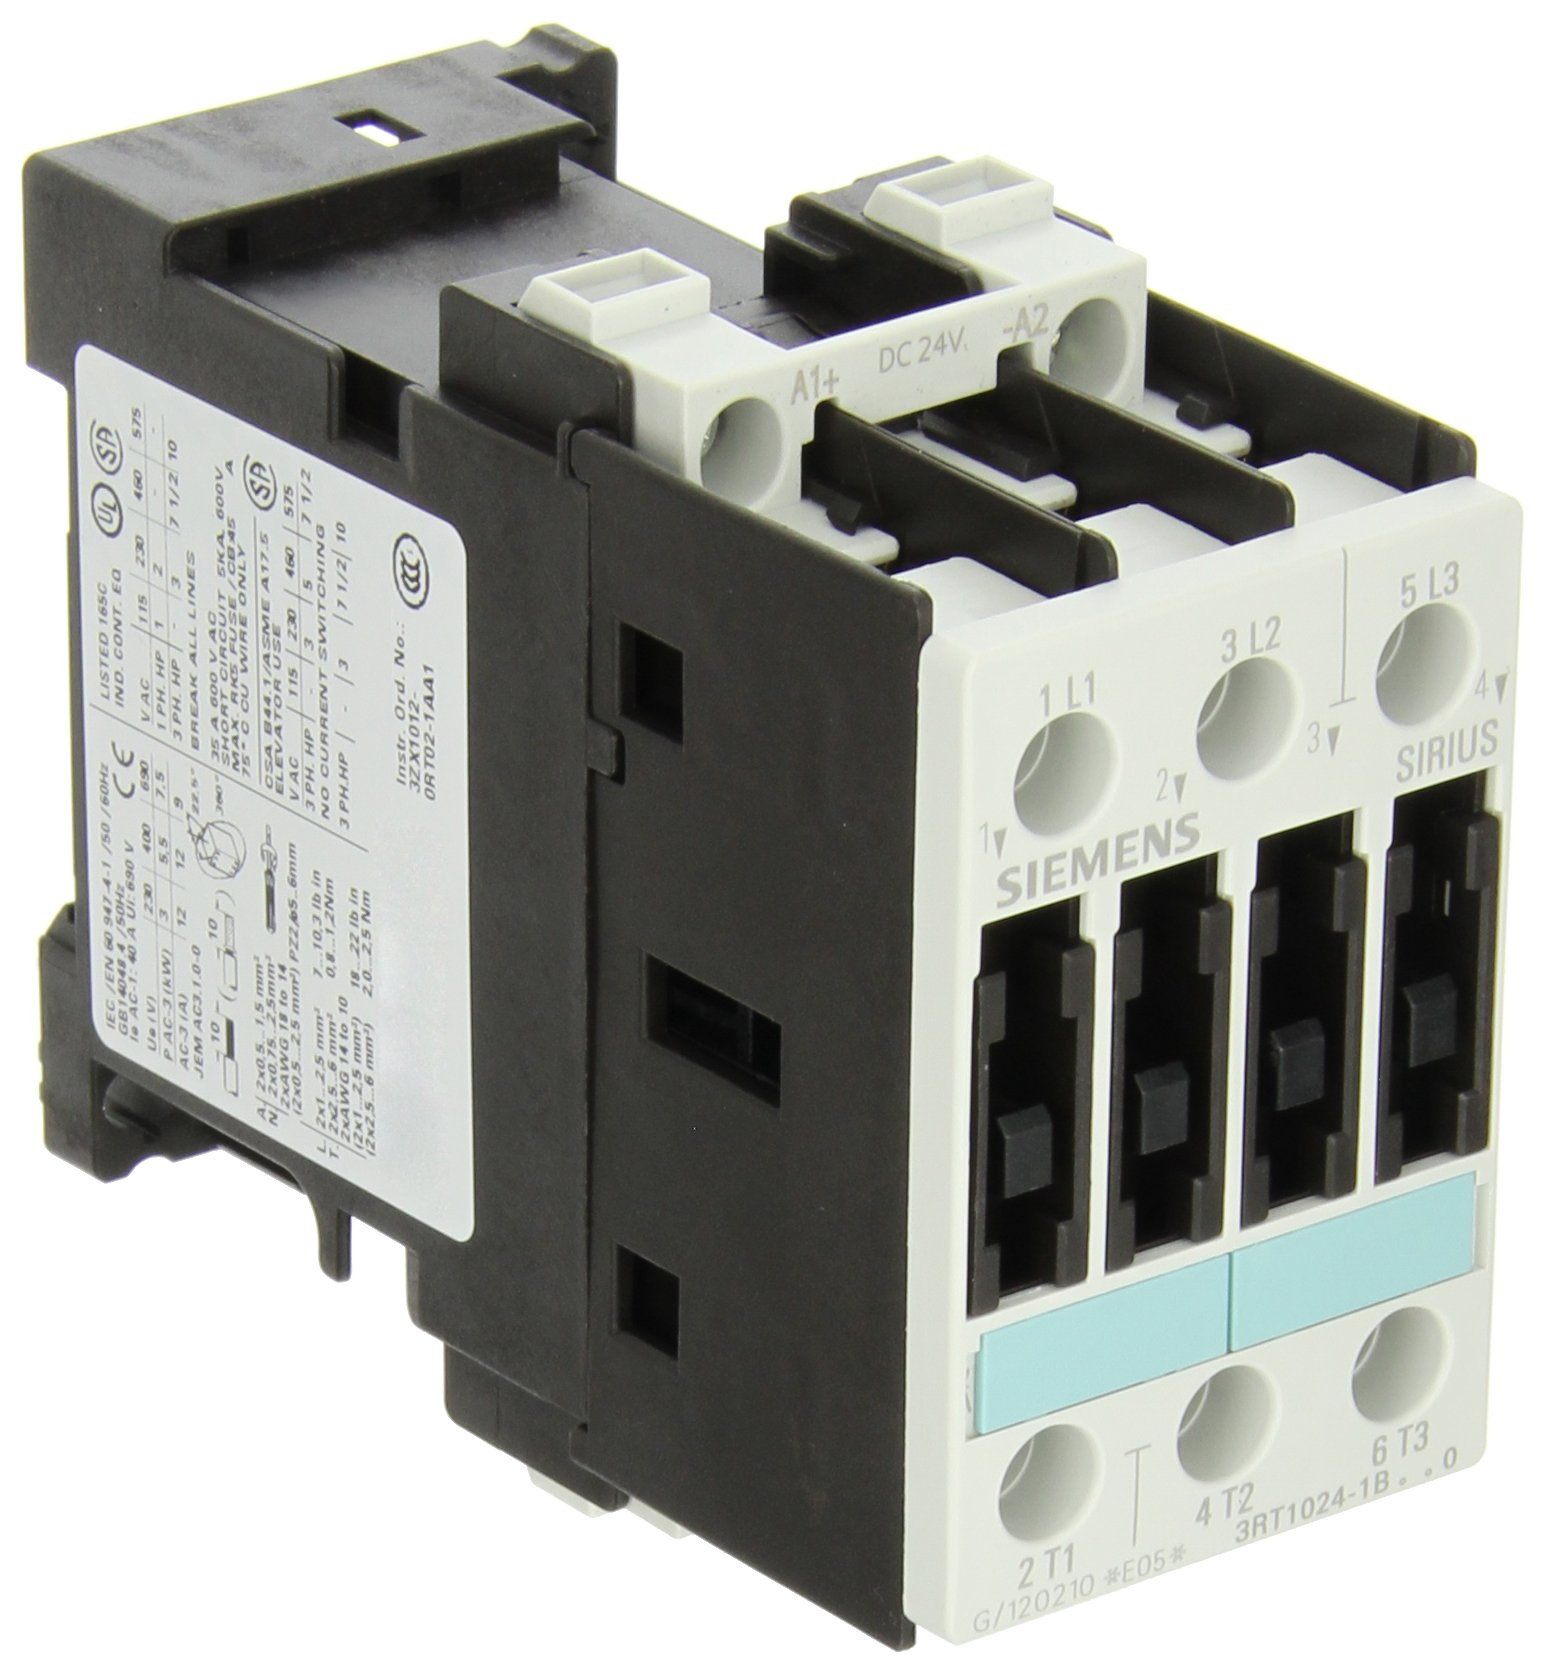 Siemens 3RT10 24-1BB40 Motor Contactor, 3 Poles, Screw Terminals, S0 Frame Size, 24V DC Coil Voltage